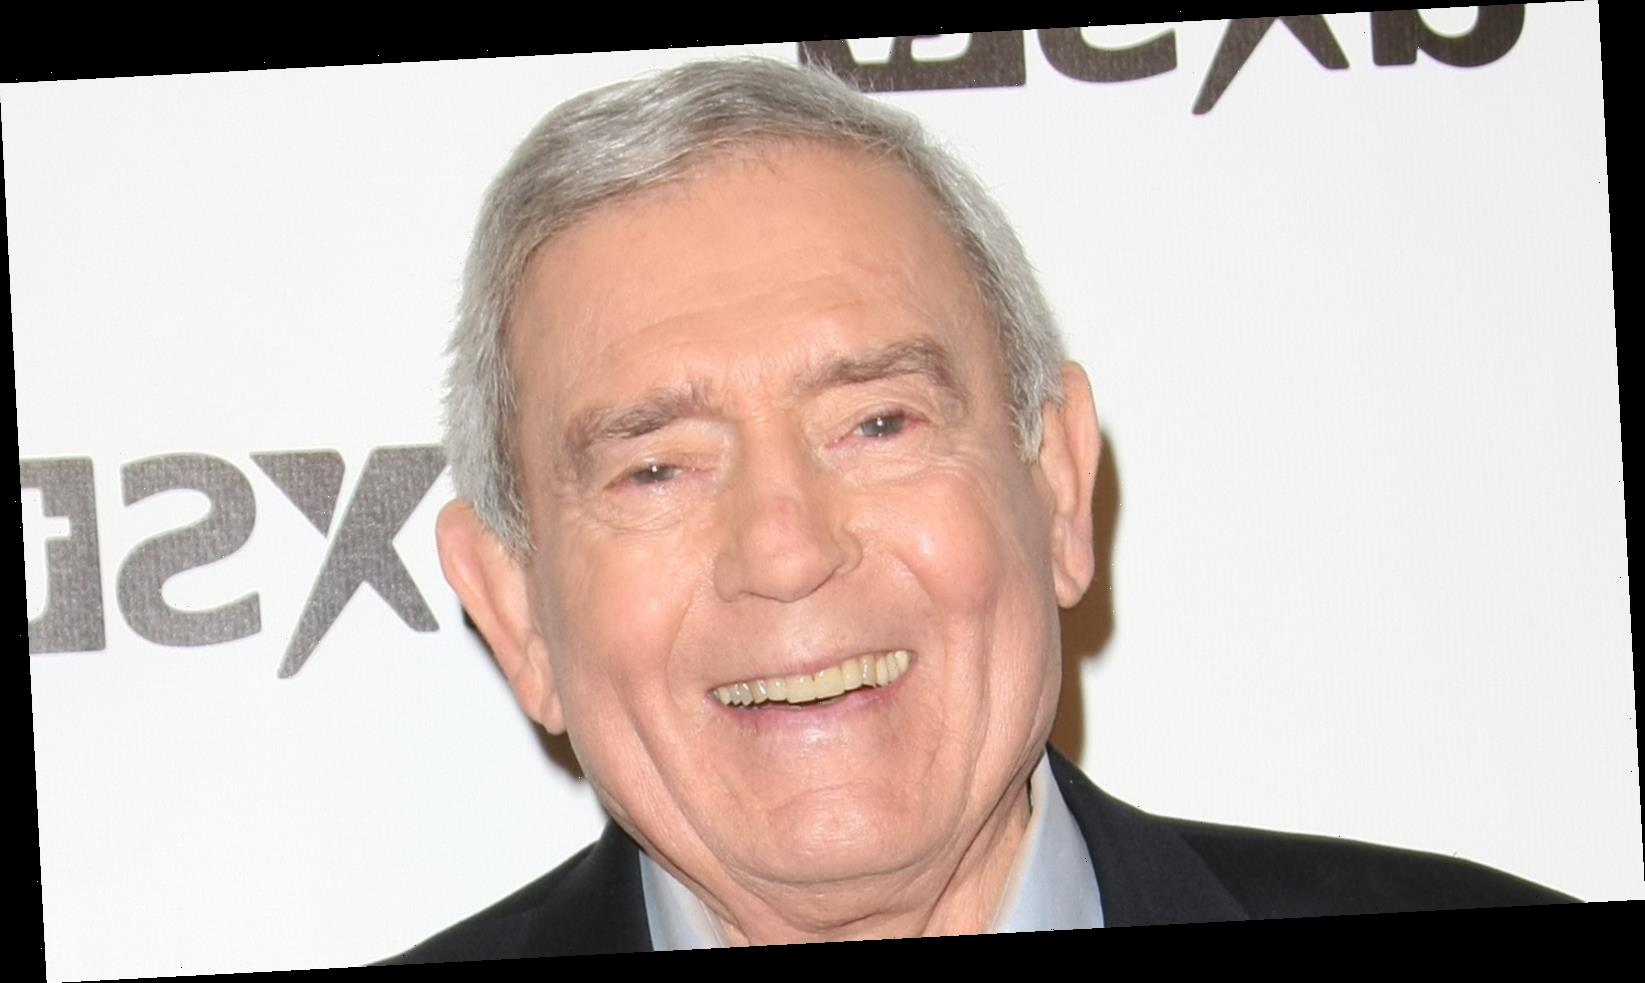 The Truth About Dan Rather's Wife